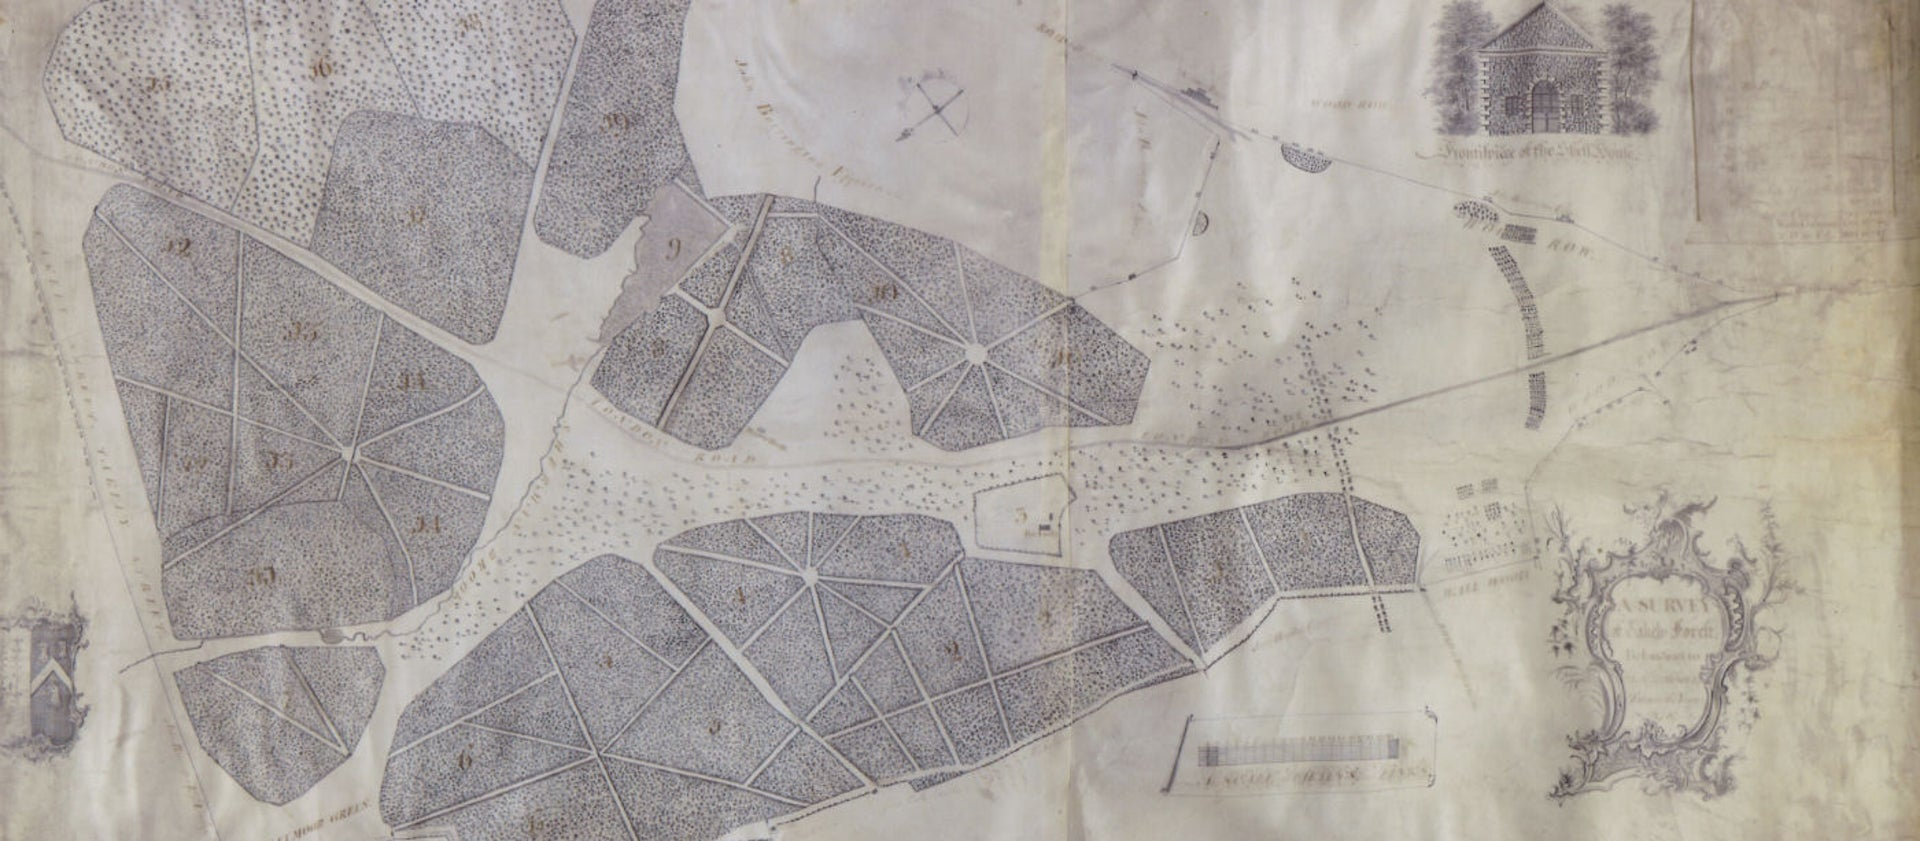 A history through maps | National Trust